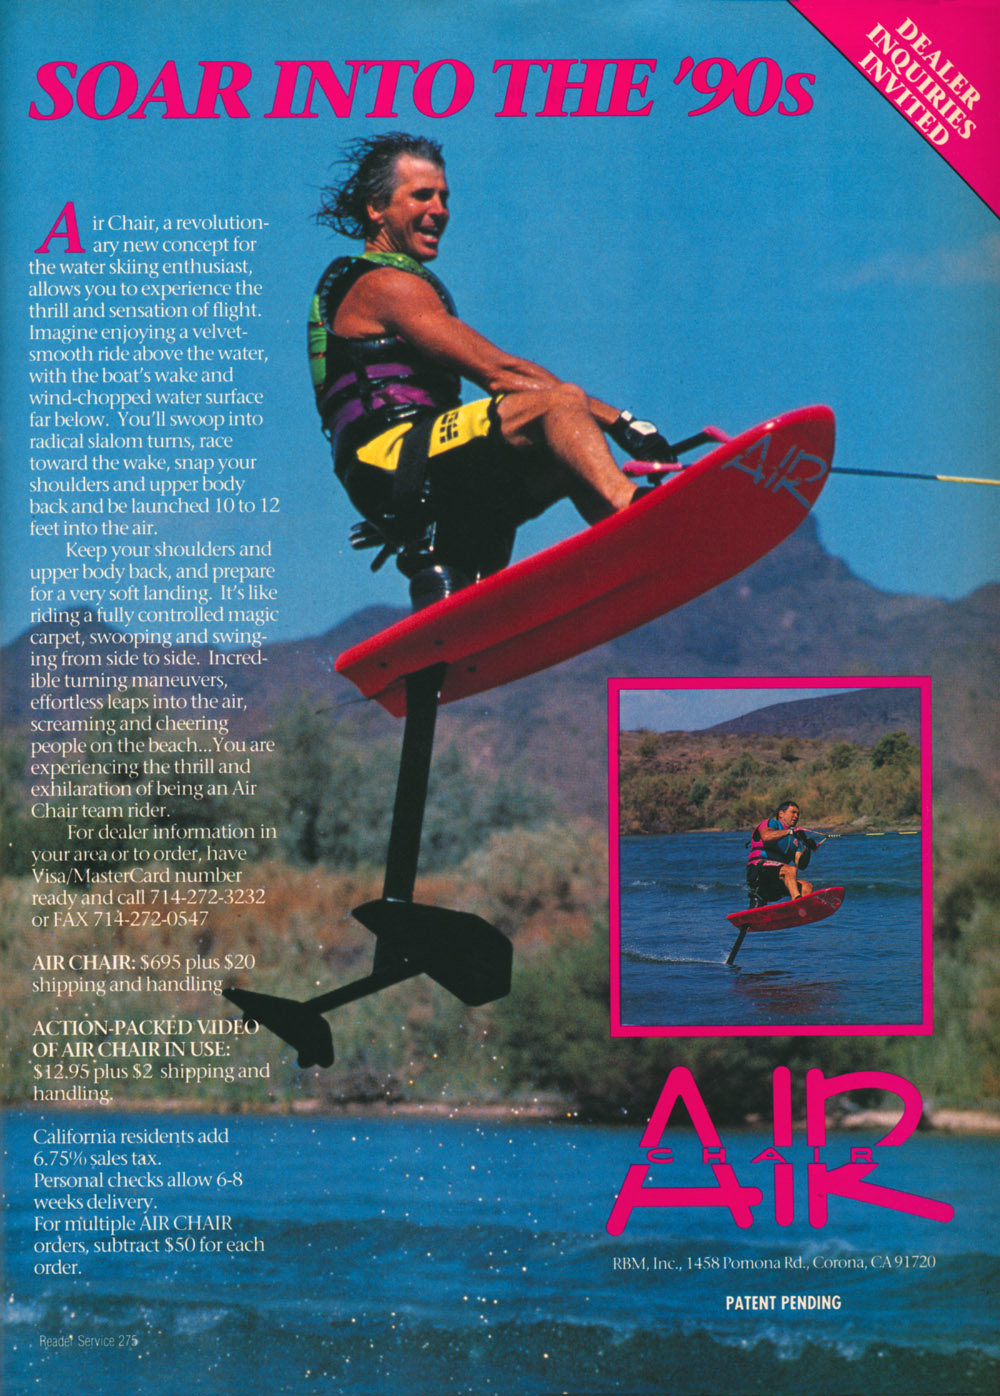 adventures-water-skiing-hydrofoiling-1990-first-air-chair-ad-murphy-woolley